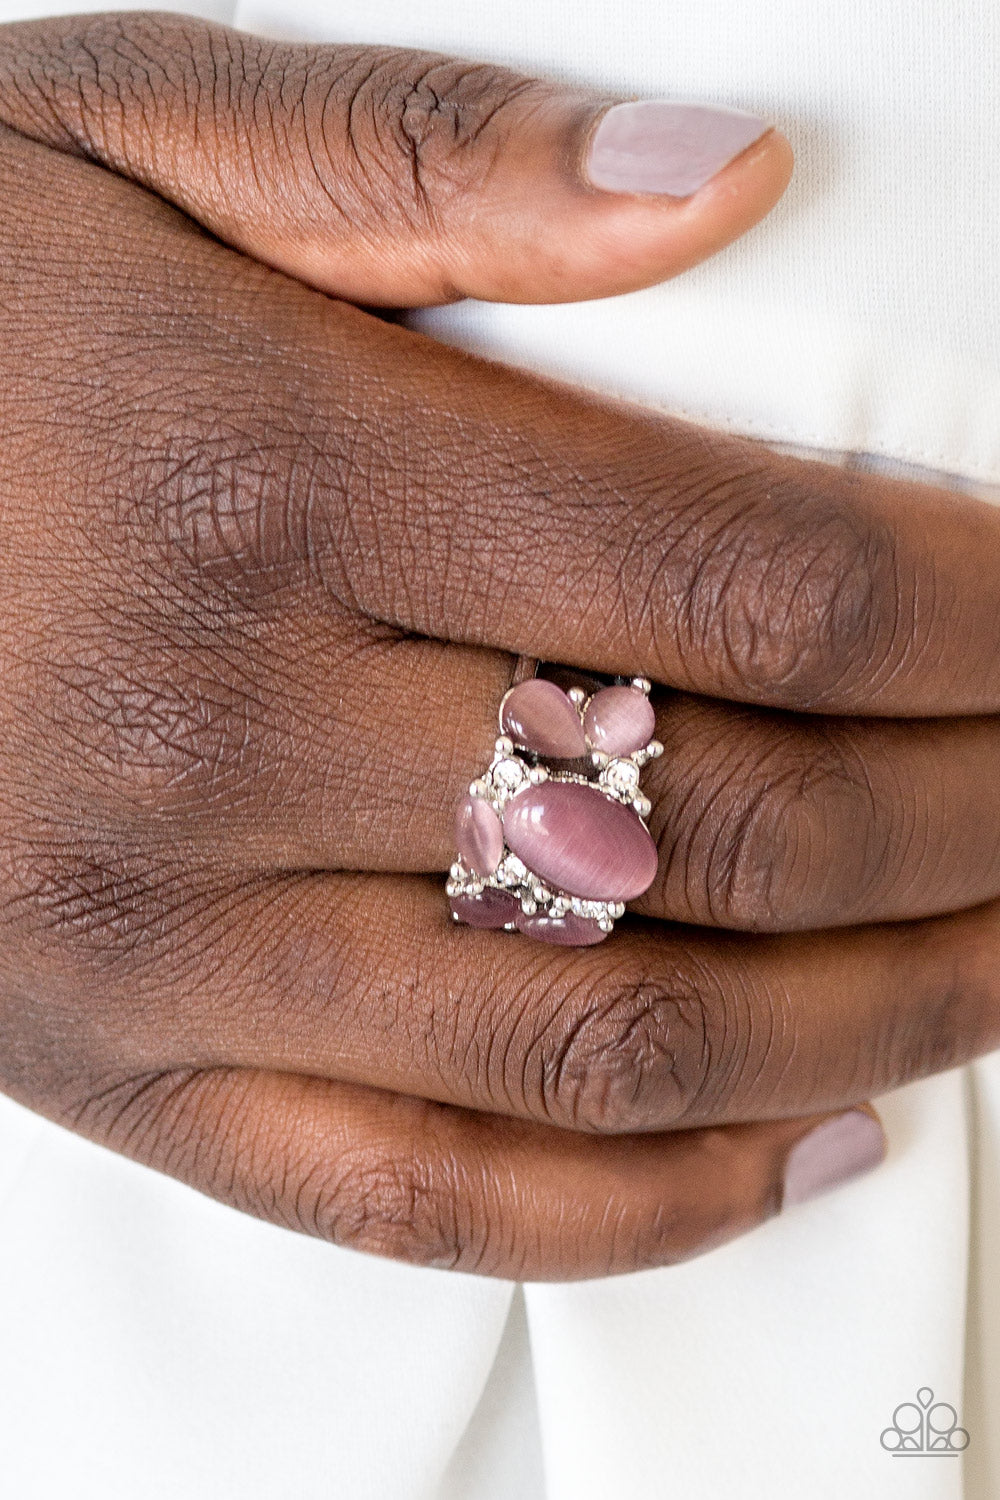 Glittery white rhinestones and glowing purple moonstones are sprinkled across the finger, coalescing into a whimsical band. Features a stretchy band for a flexible fit.  Sold as one individual ring.  Always nickel and lead free.